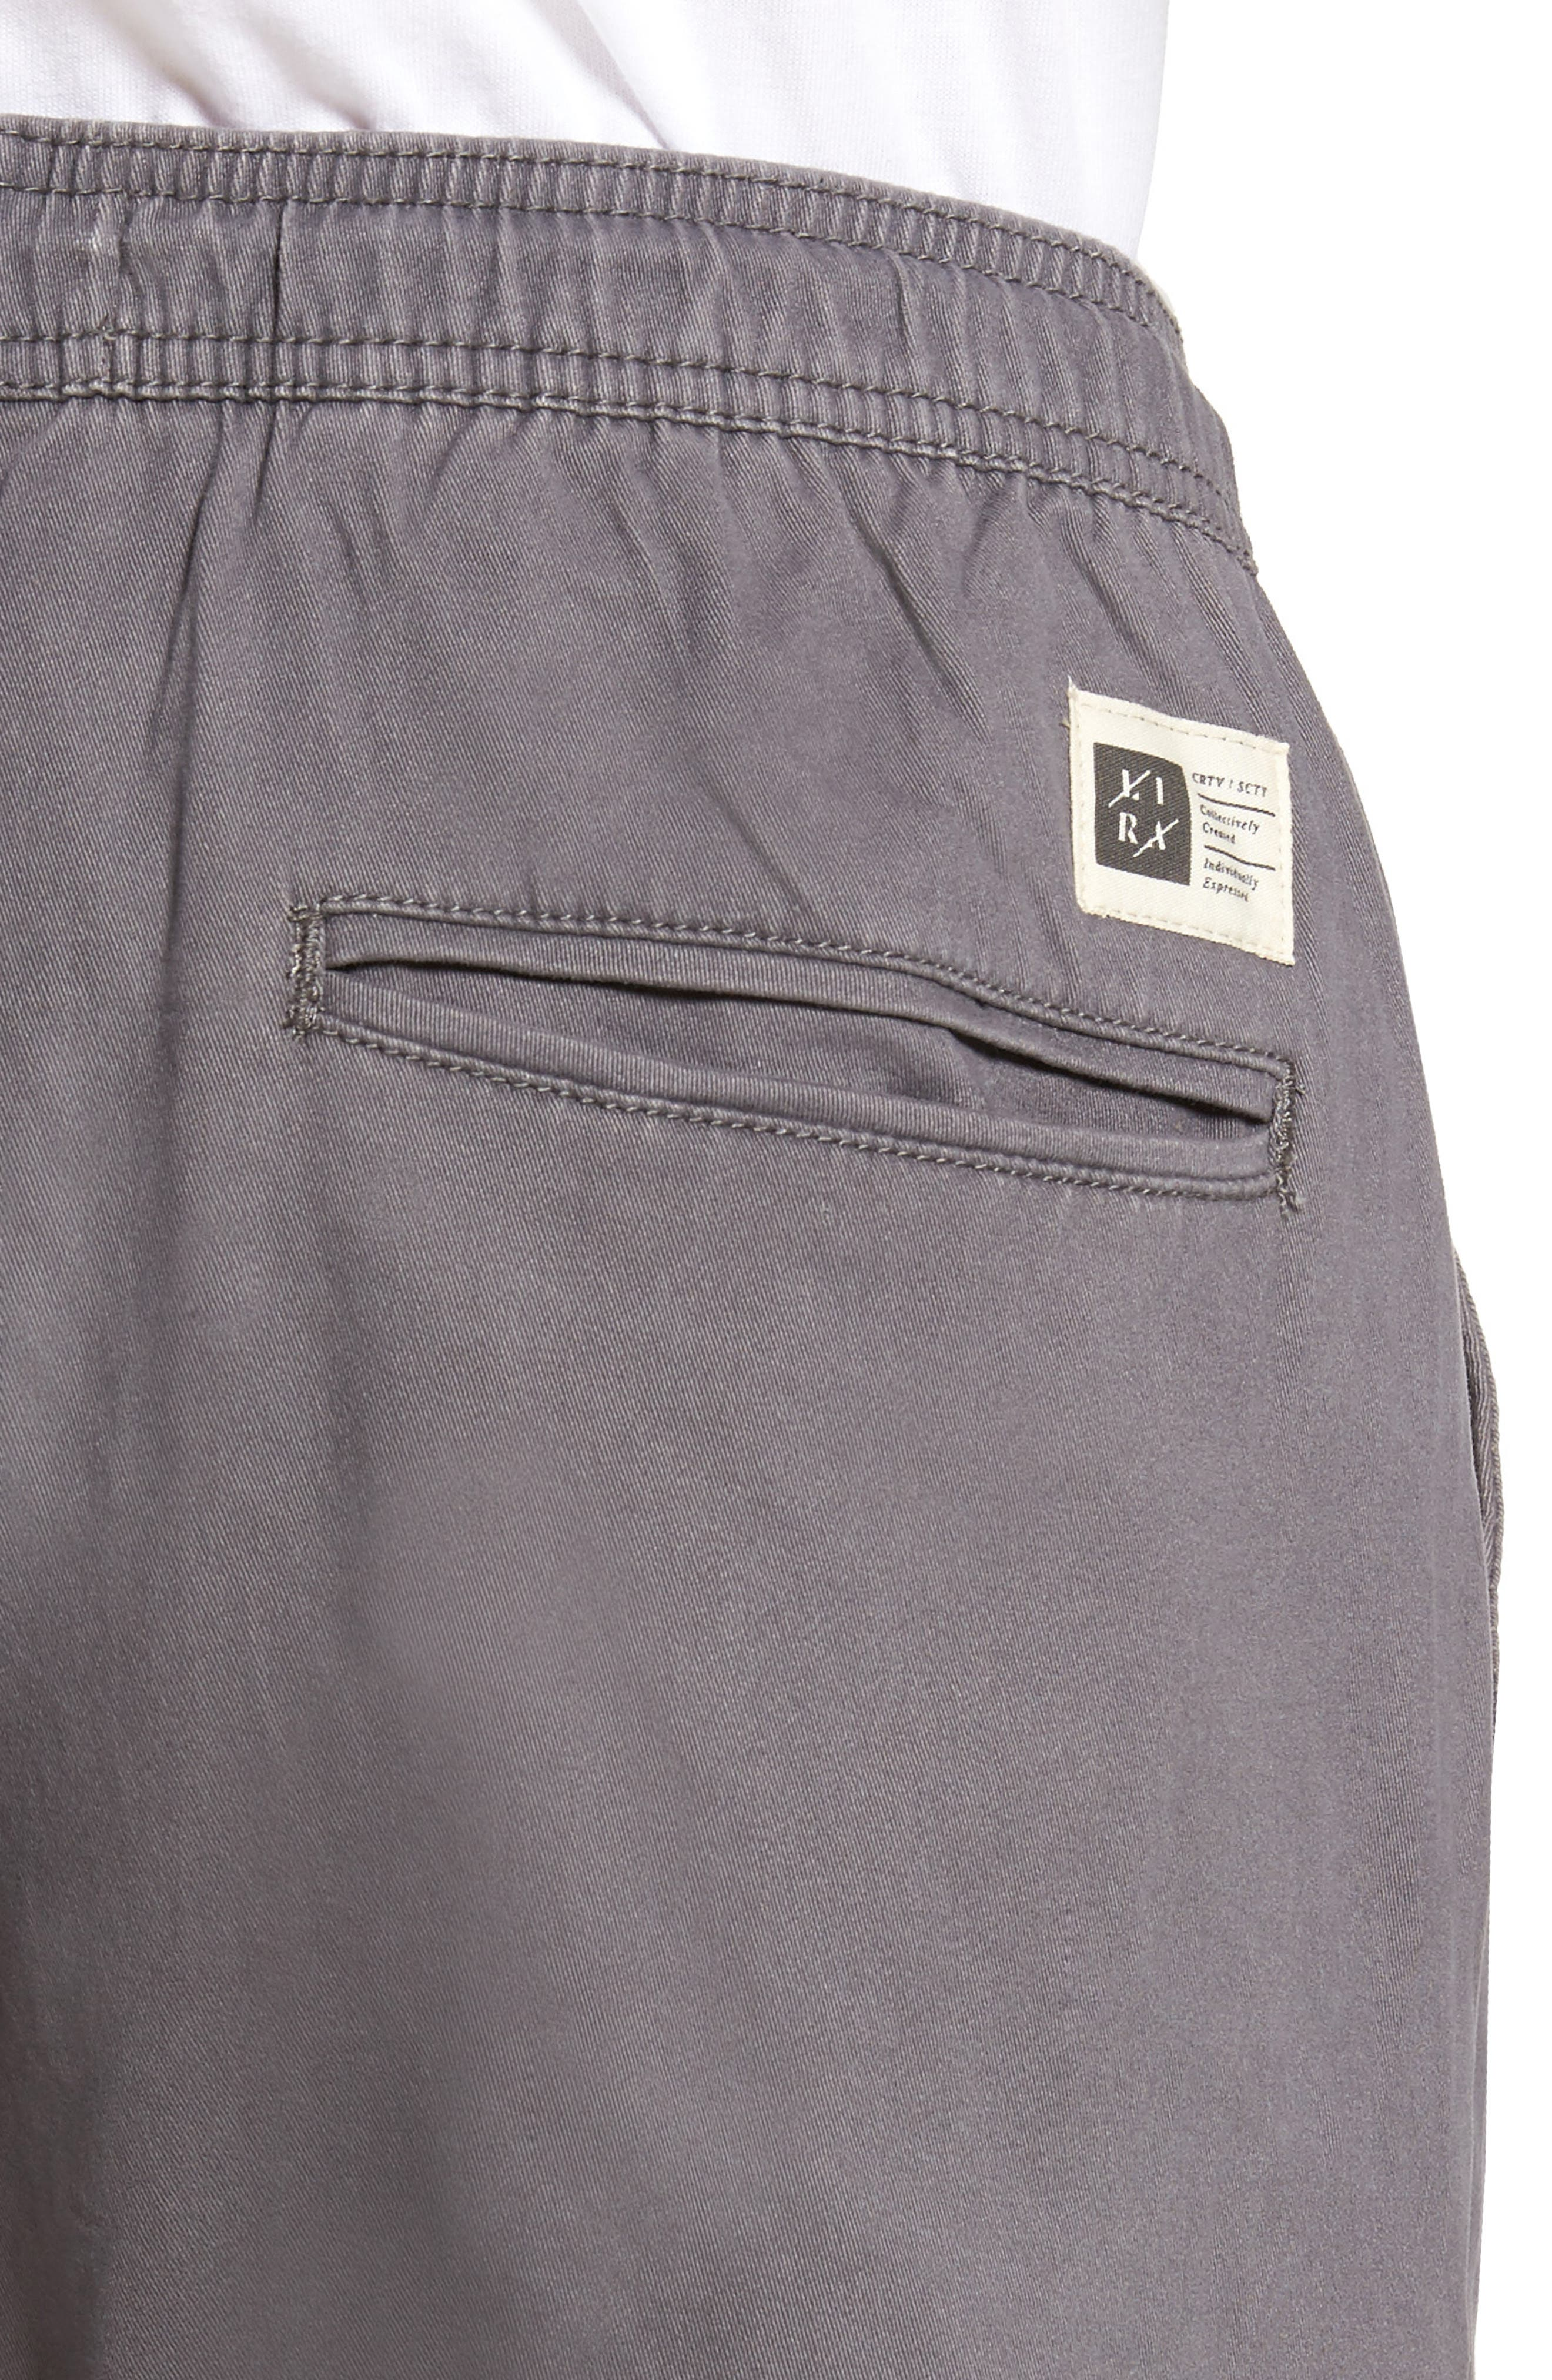 Weekend Jogger Pants,                             Alternate thumbnail 26, color,